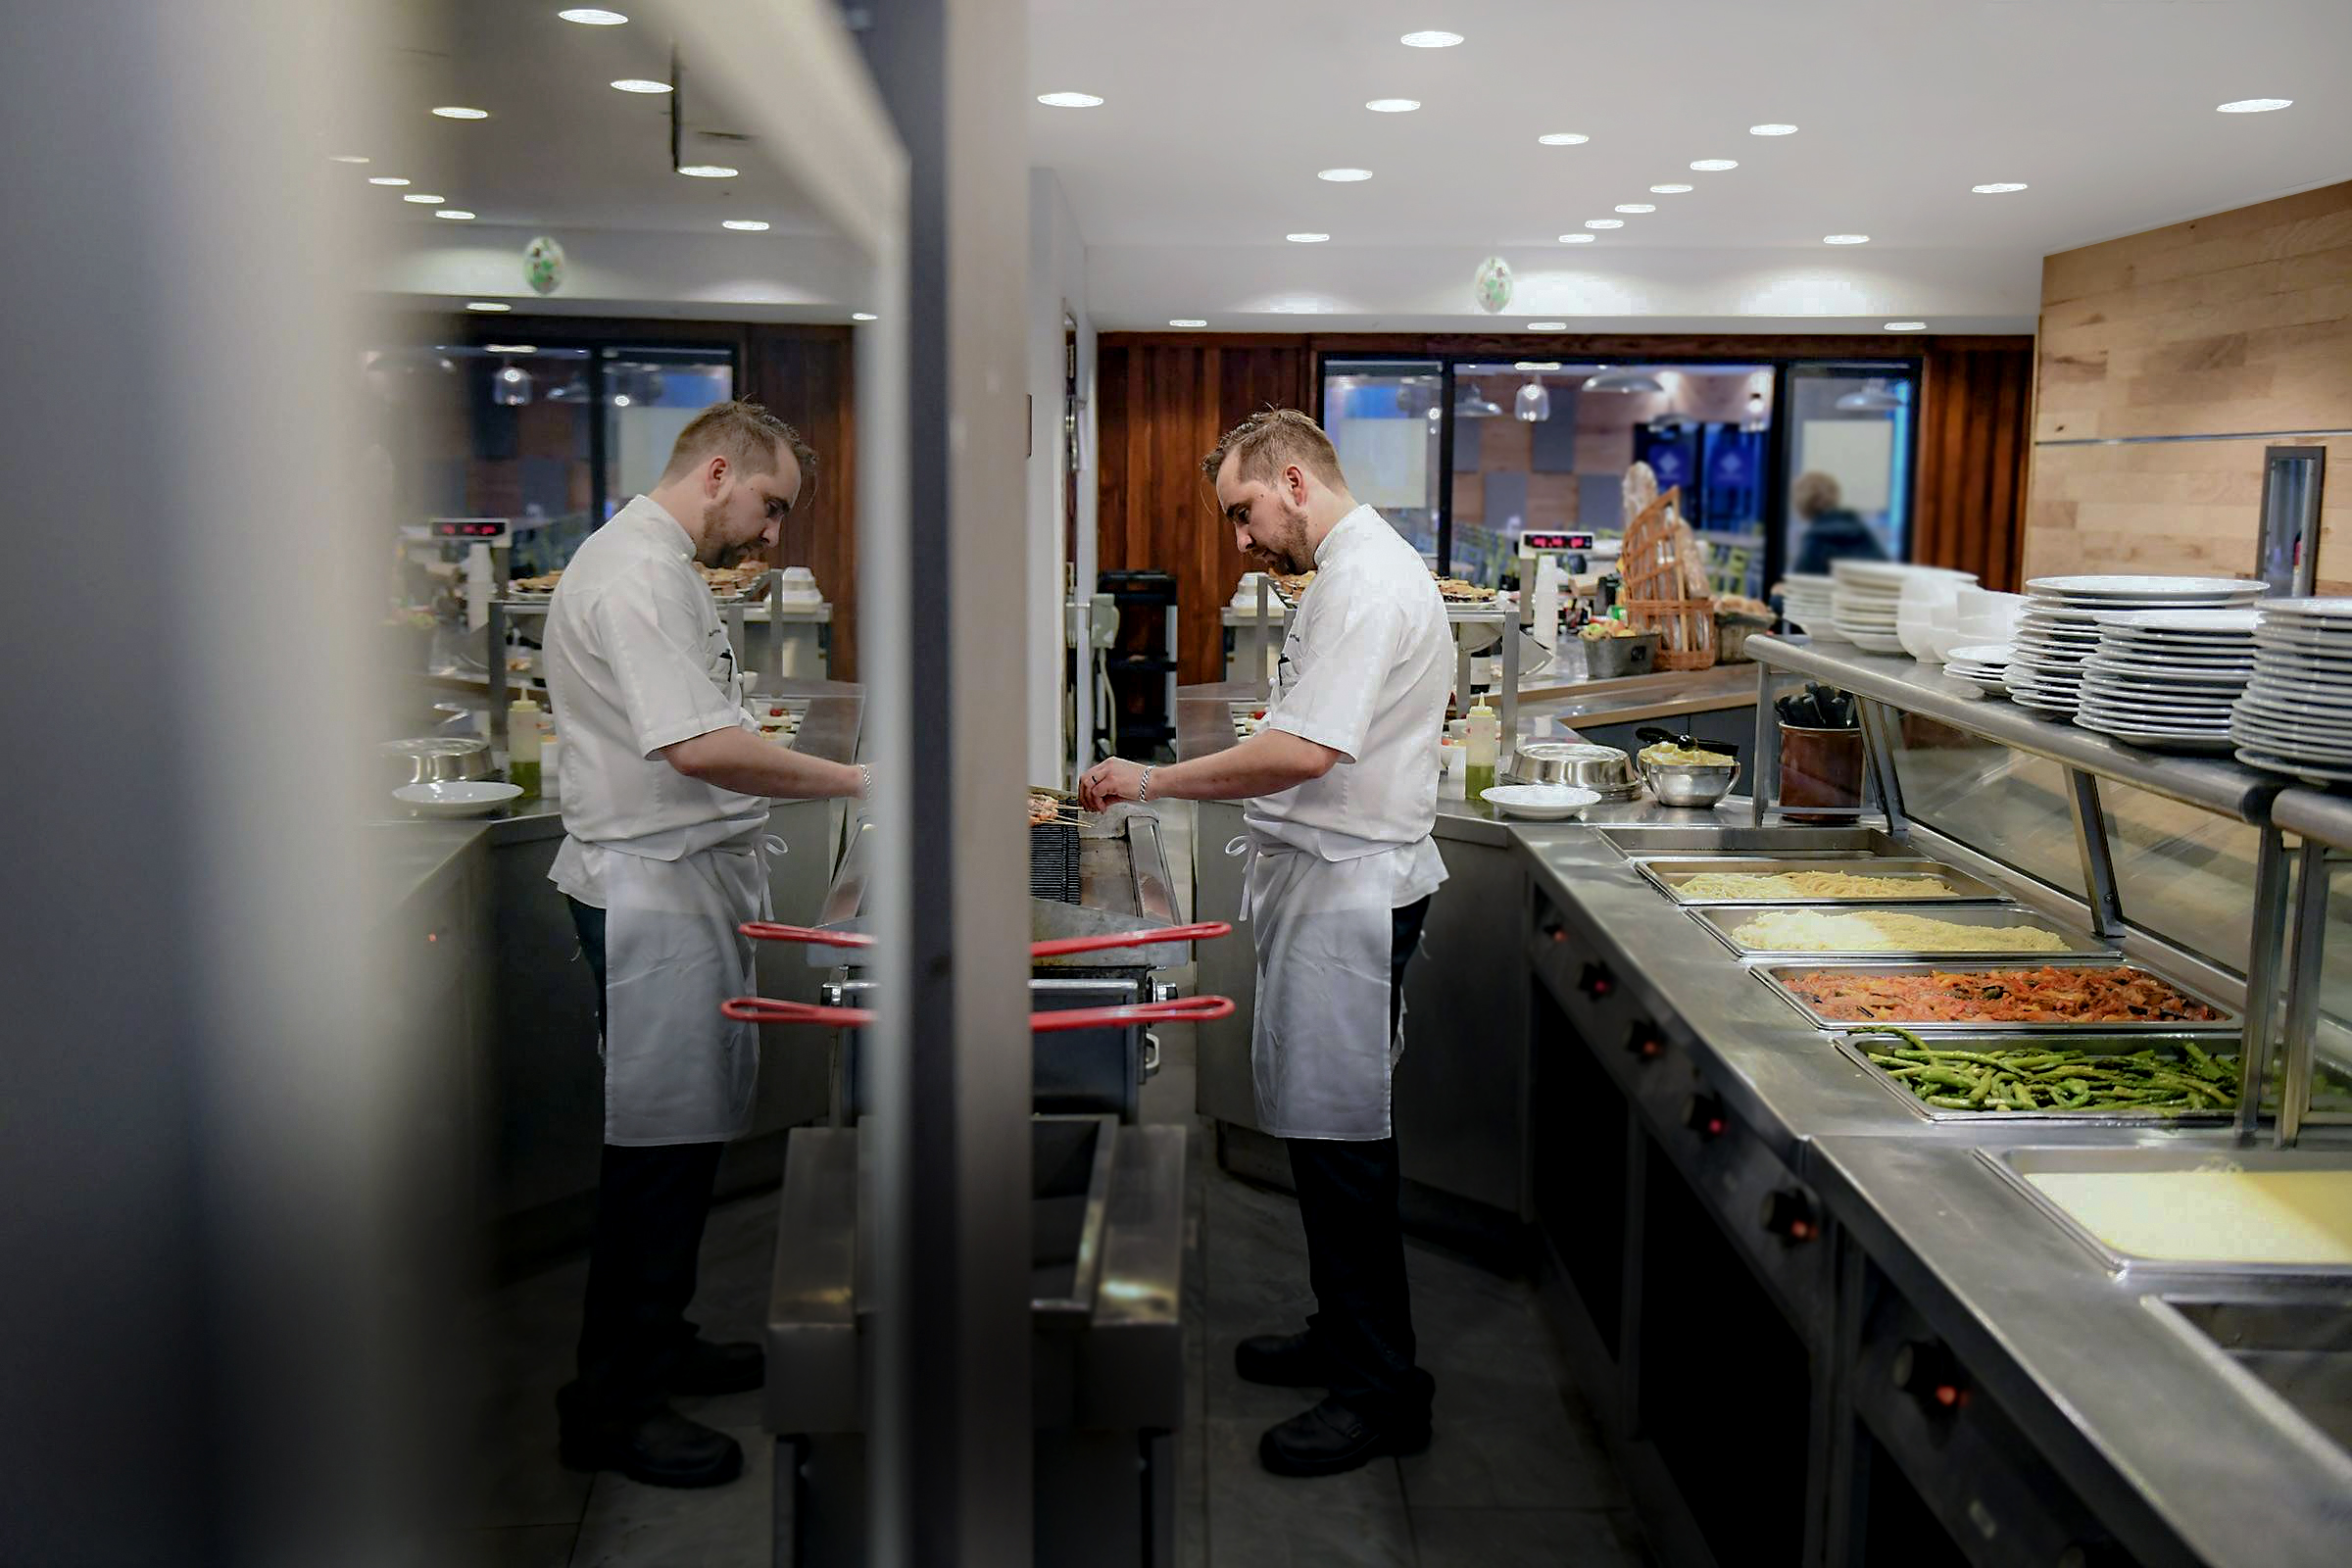 Chef Mark Courseille prepares lunch at Le Café Descartes in the French Embassy. (Matt McClain/The Washington Post)